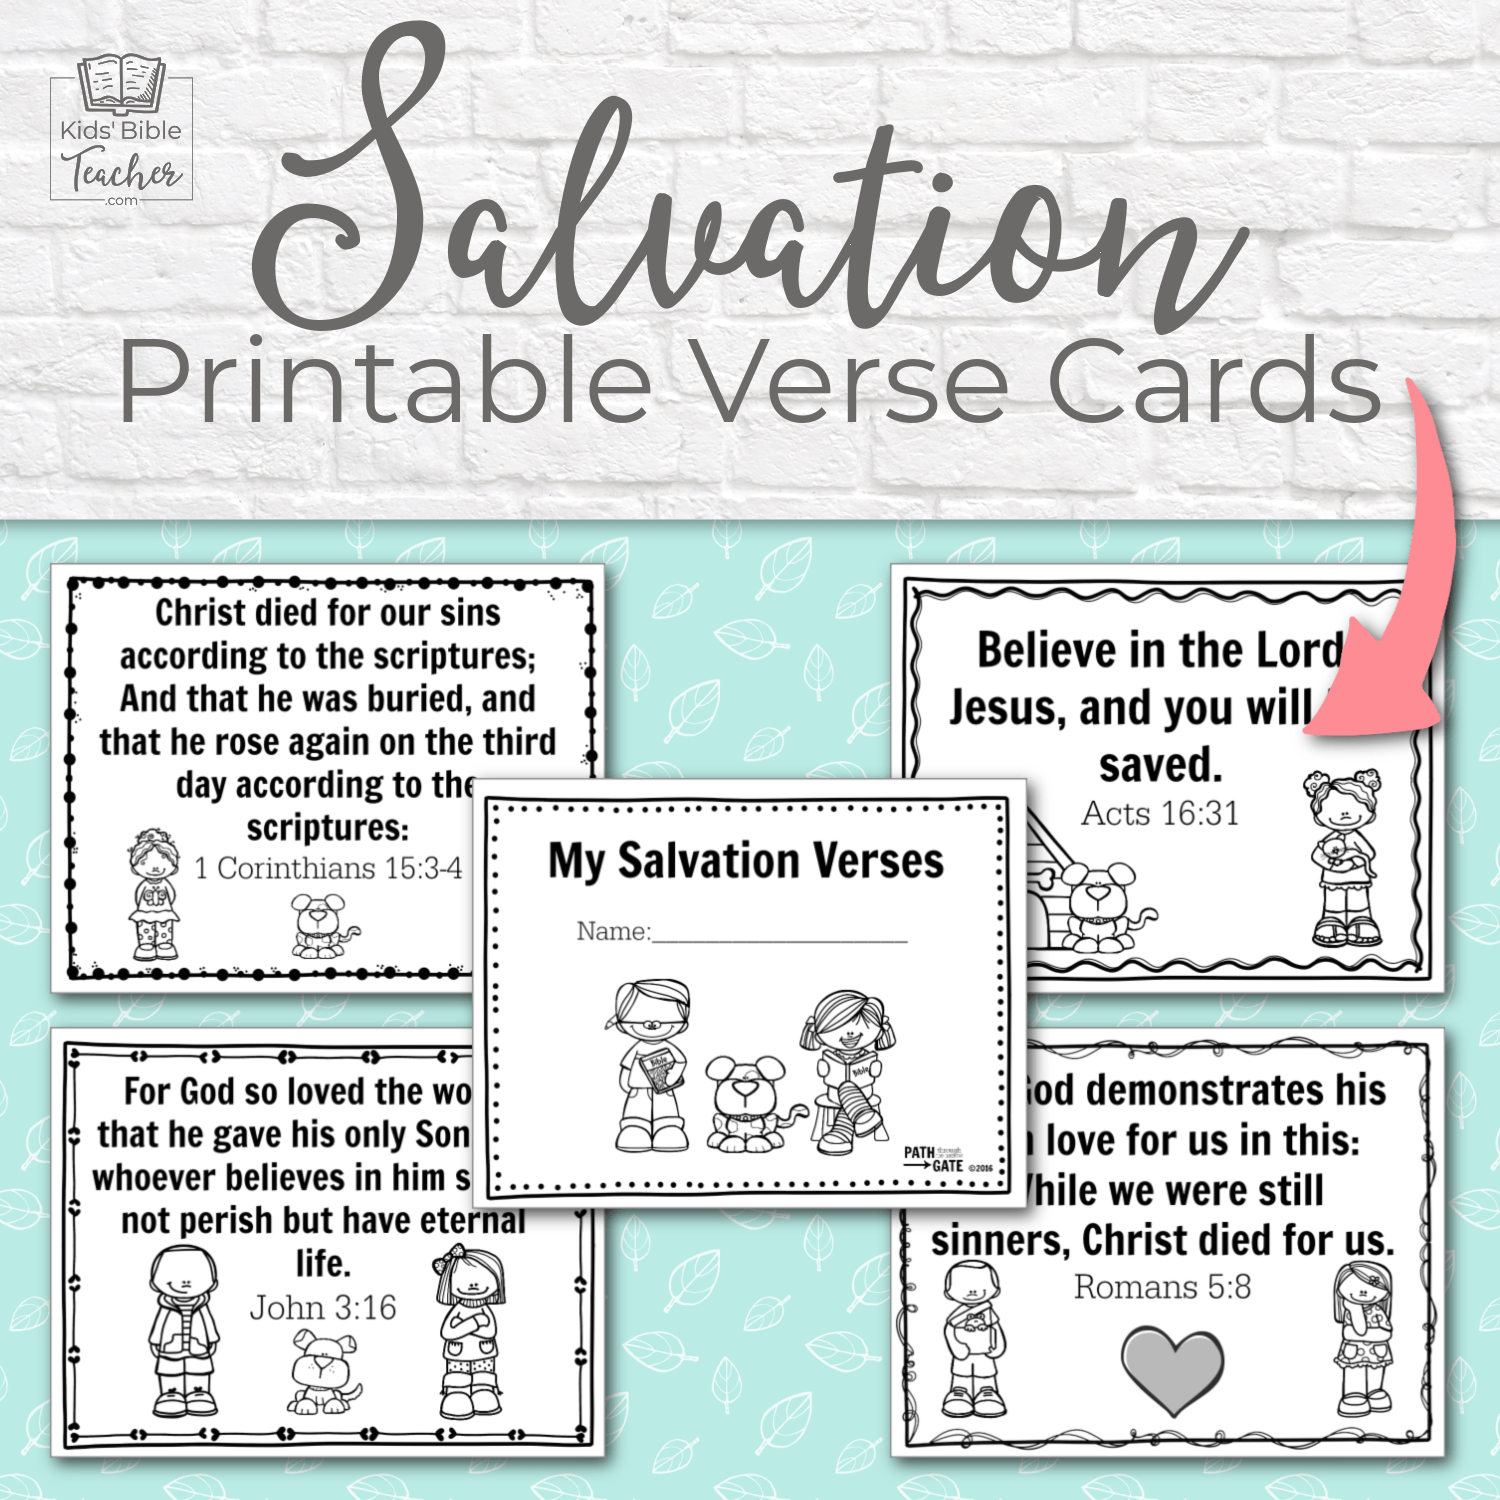 These free printable verse cards are a perfect way to share the Gospel with your kids, or to hand out to kids visiting your Sunday School or Awana.